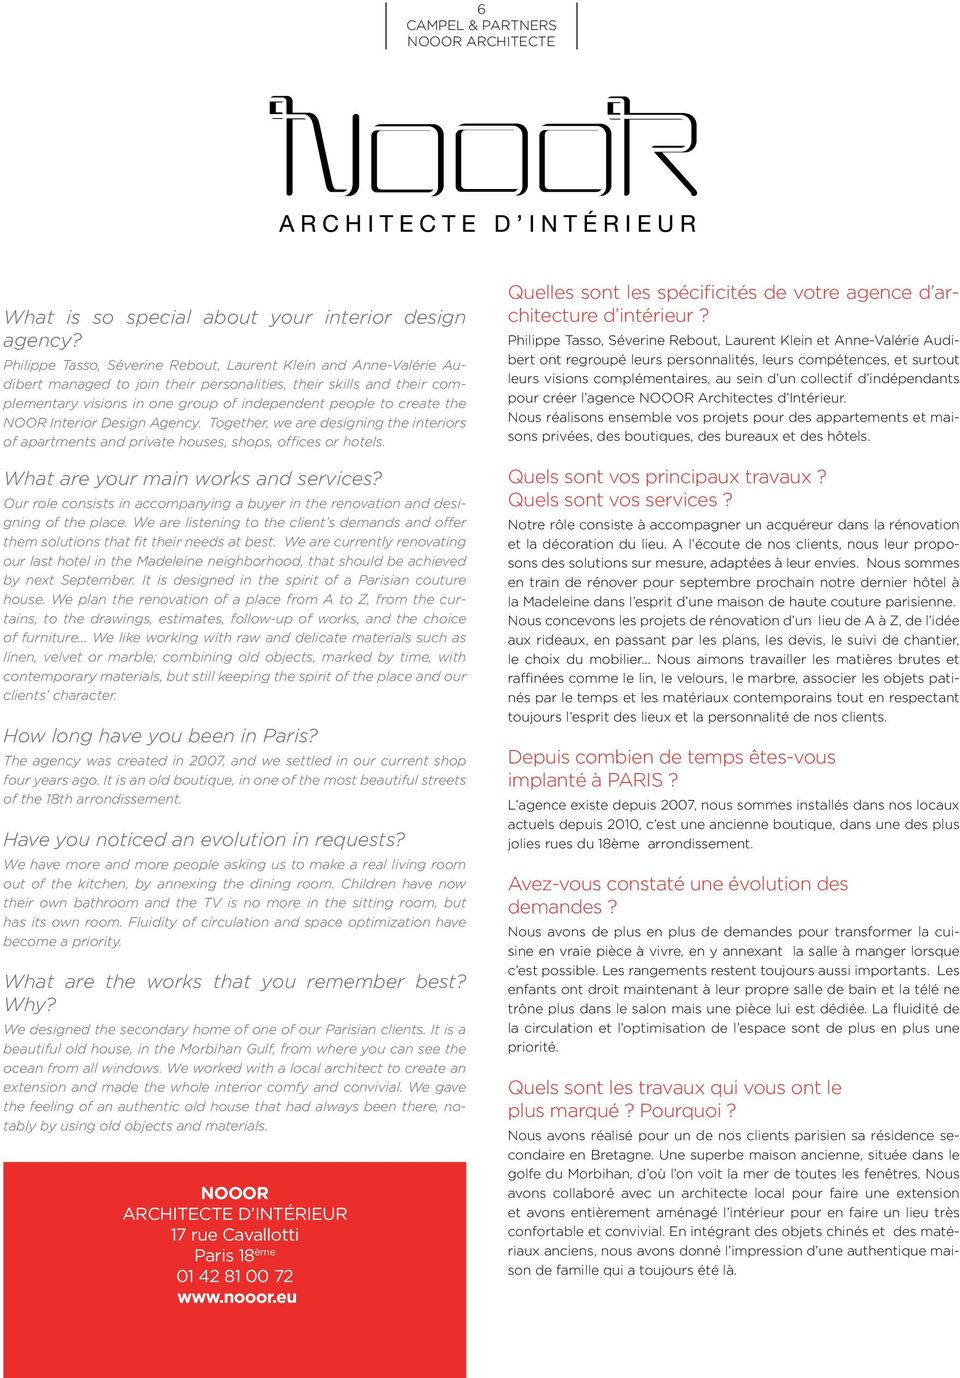 the NOOR Interior Design Agency. Together, we are designing the interiors of apartments and private houses, shops, offices or hotels. What are your main works and services?